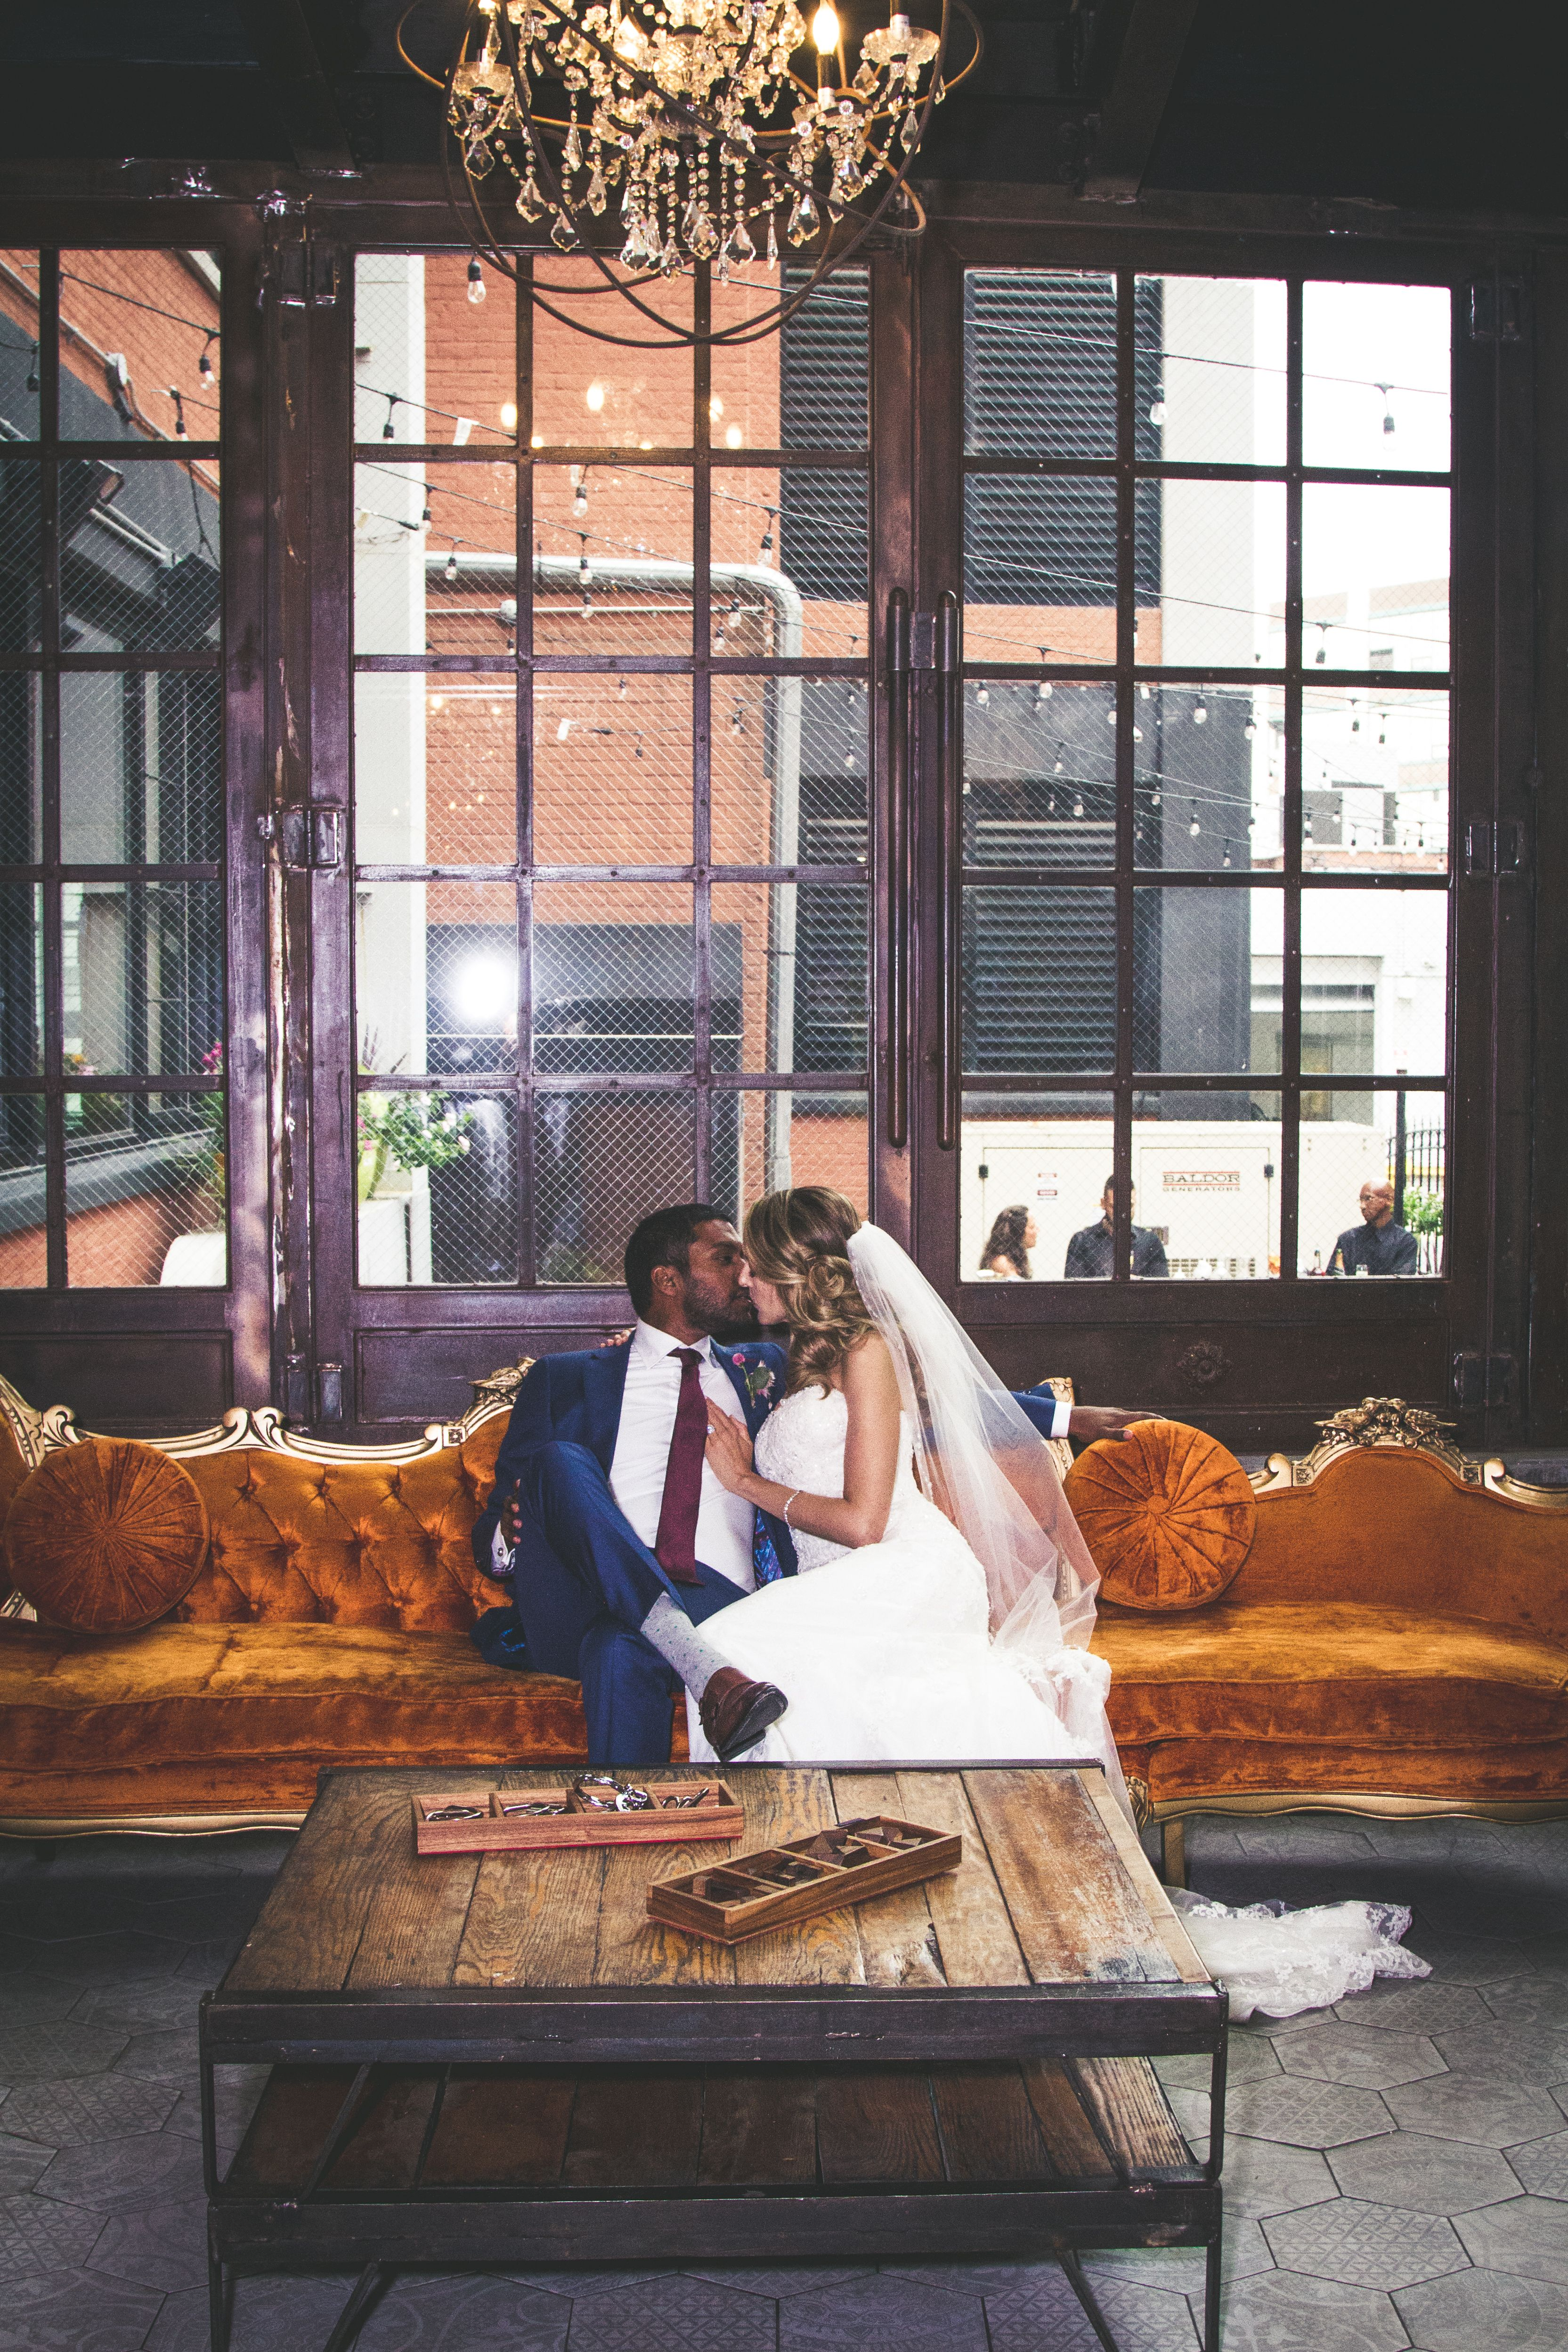 Laurel and Ashish's Wedding at The Paper Factory Hotel